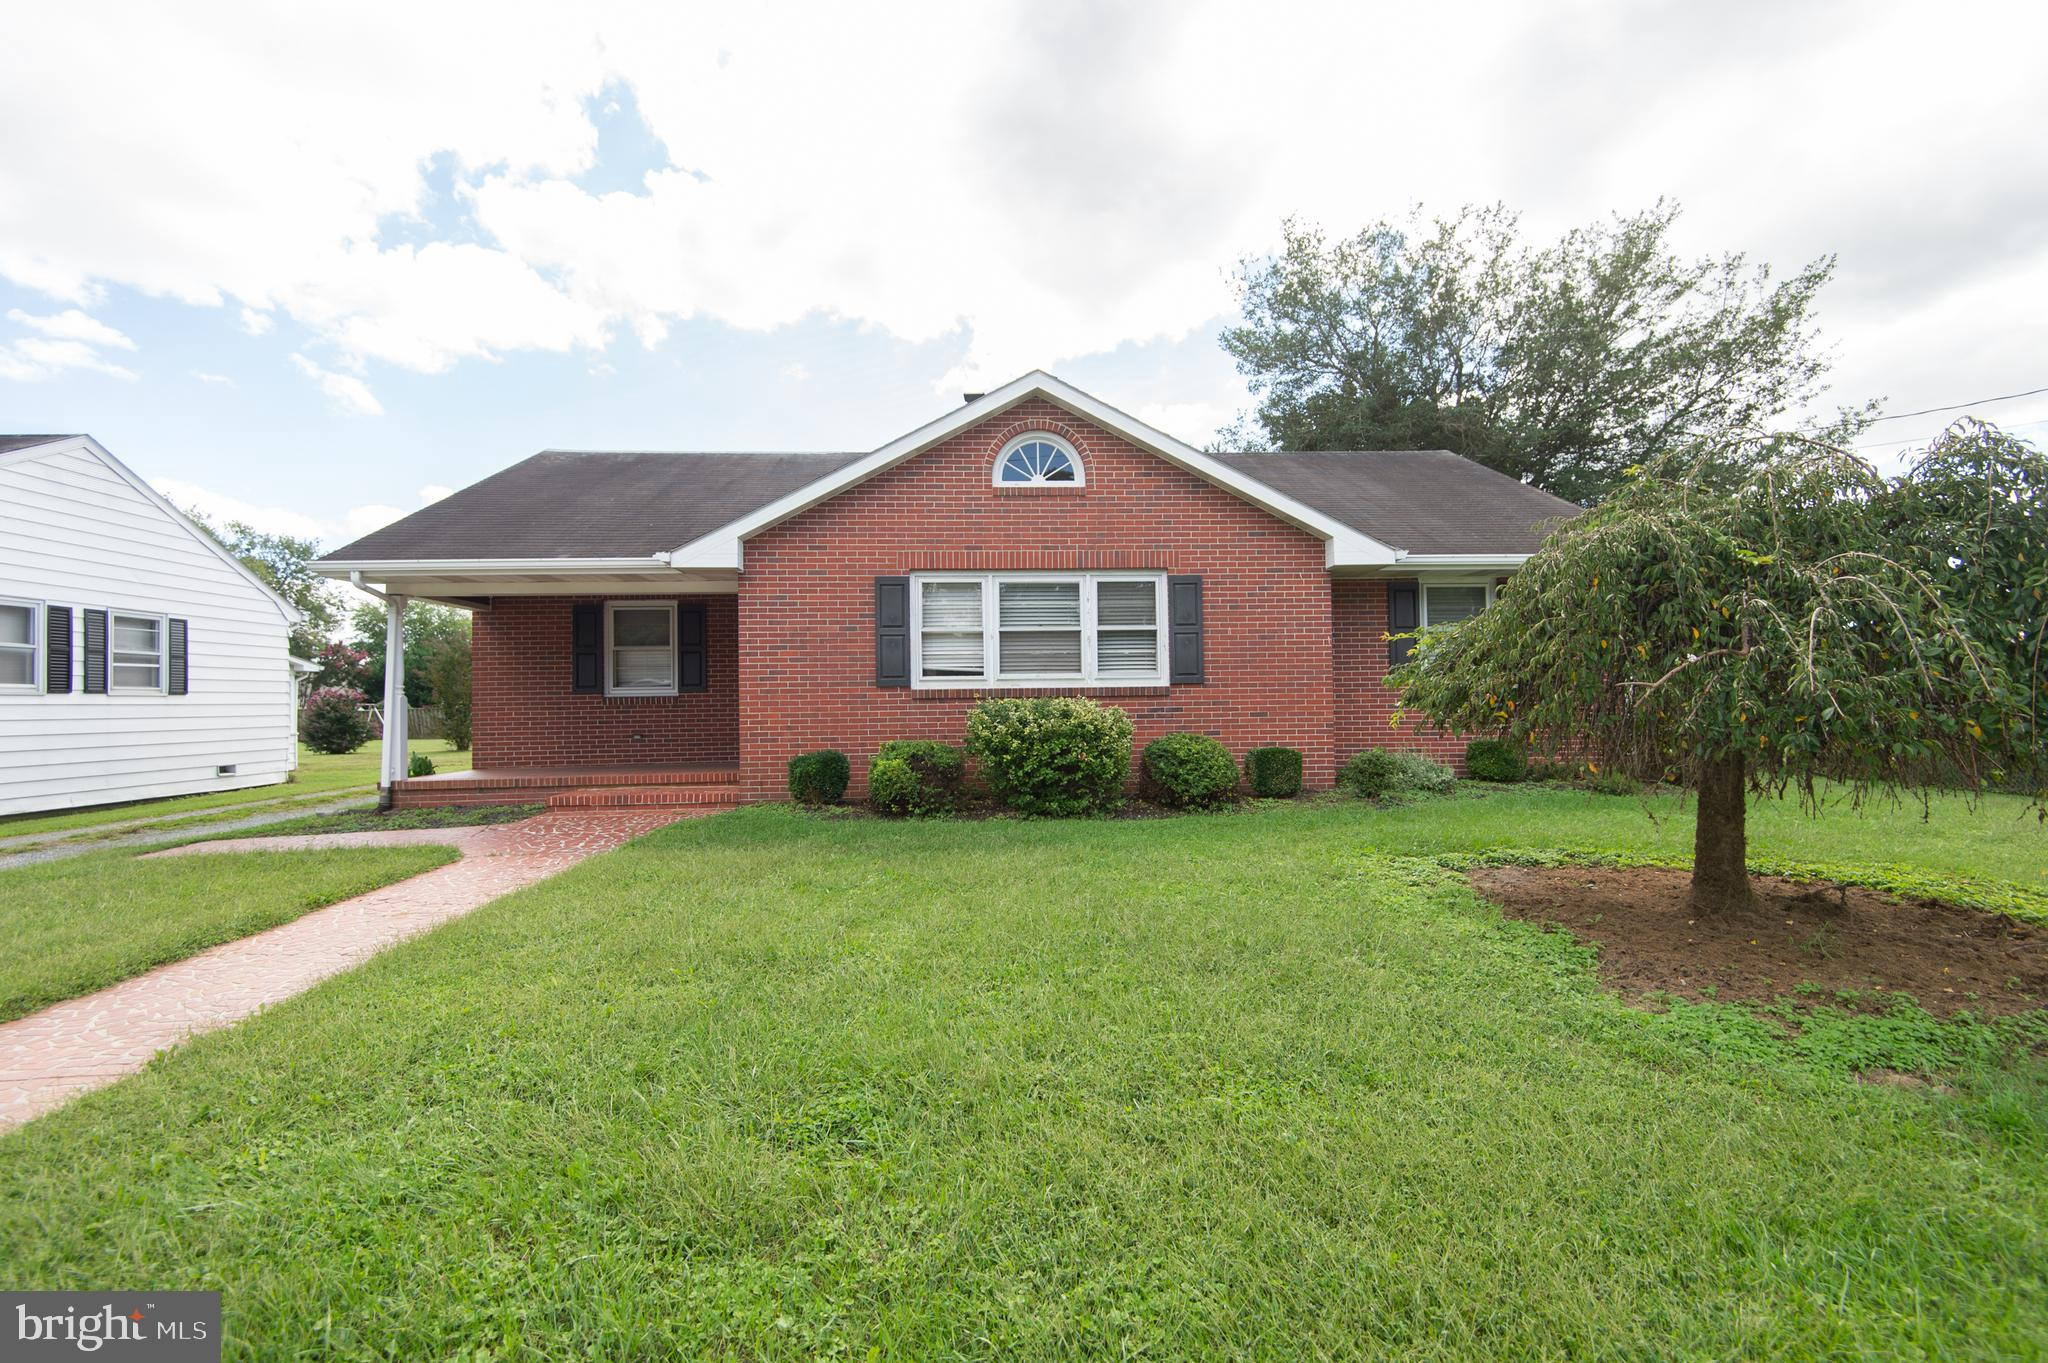 Looking for mid century modern- this is it!  Brick rancher with gleaming hardwood floors.  Large living room with fireplace and cool built-ins.  Great  opportunity to put your spin on this one! Large block outbuilding with two bays and second floor storage.  Imagine the possibilities!